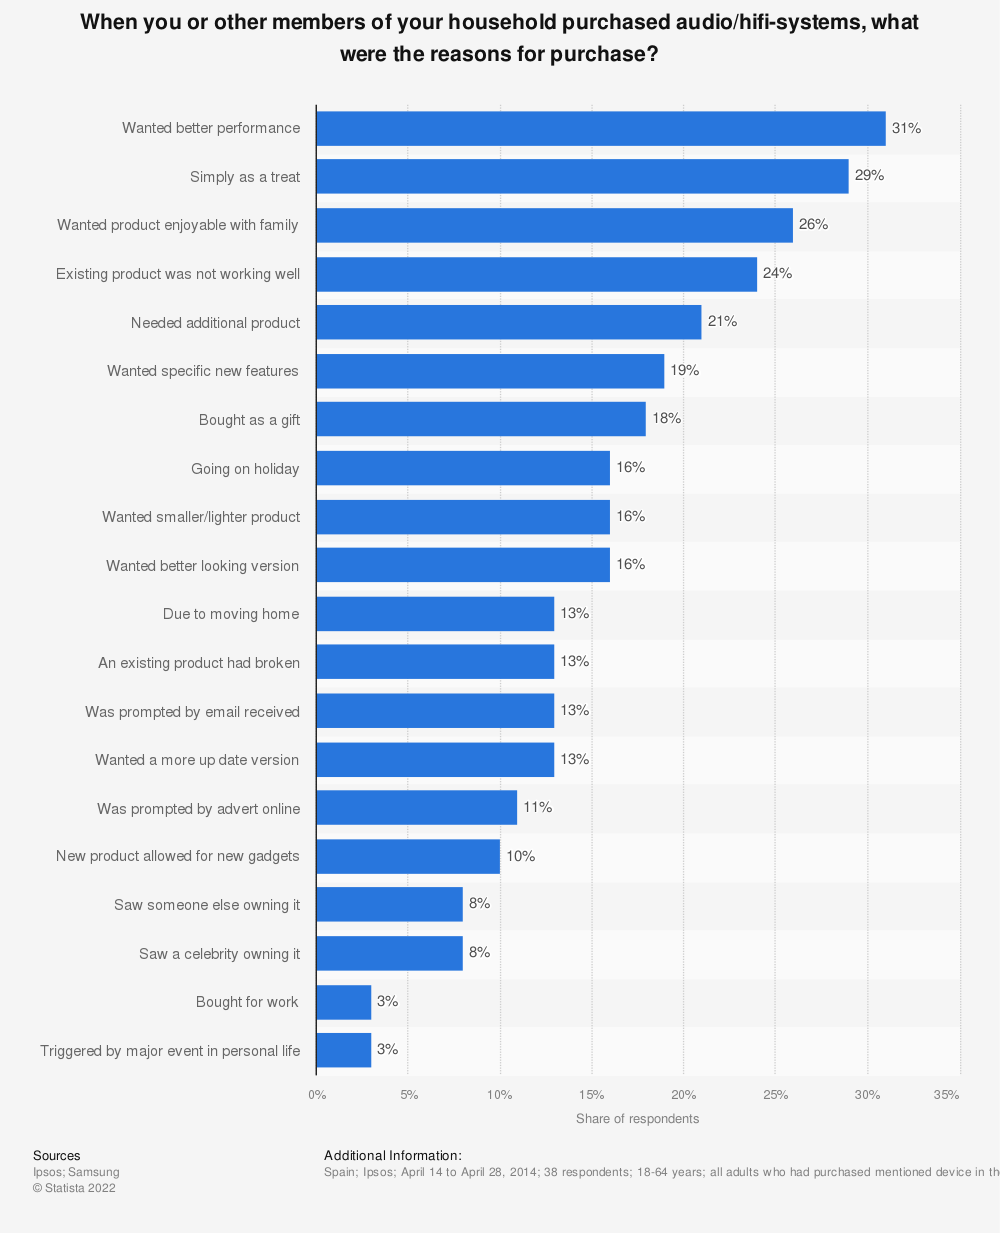 Statistic: When you or other members of your household purchased audio/hifi-systems, what were the reasons for purchase? | Statista